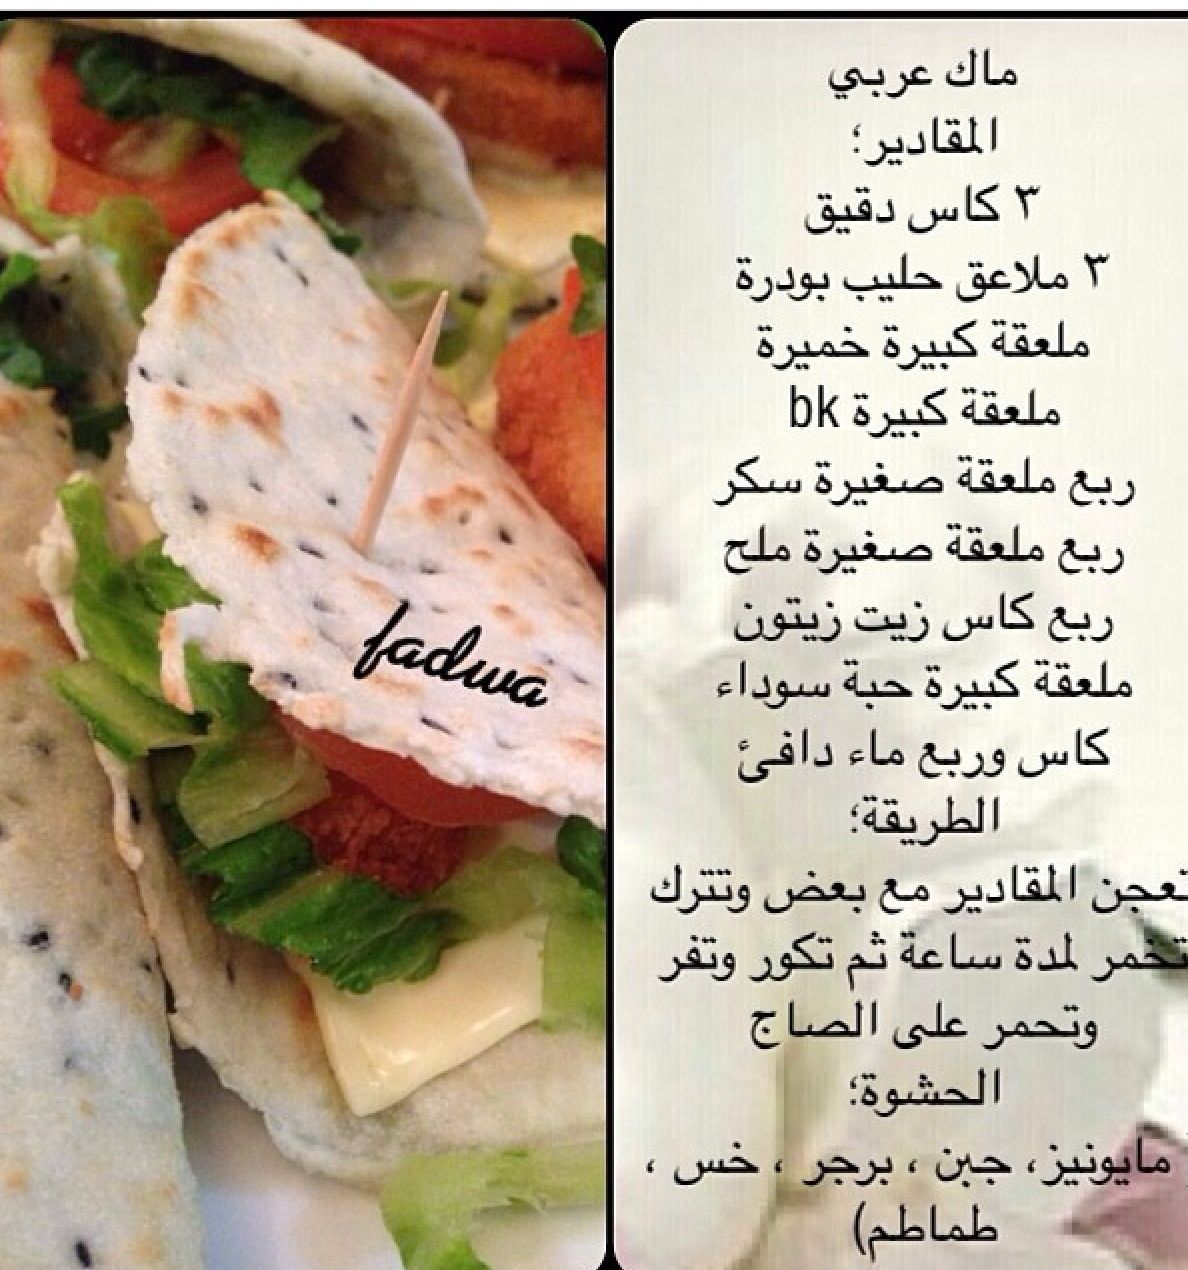 Pin By Nahed On خبز Recipes Arabic Food Food And Drink